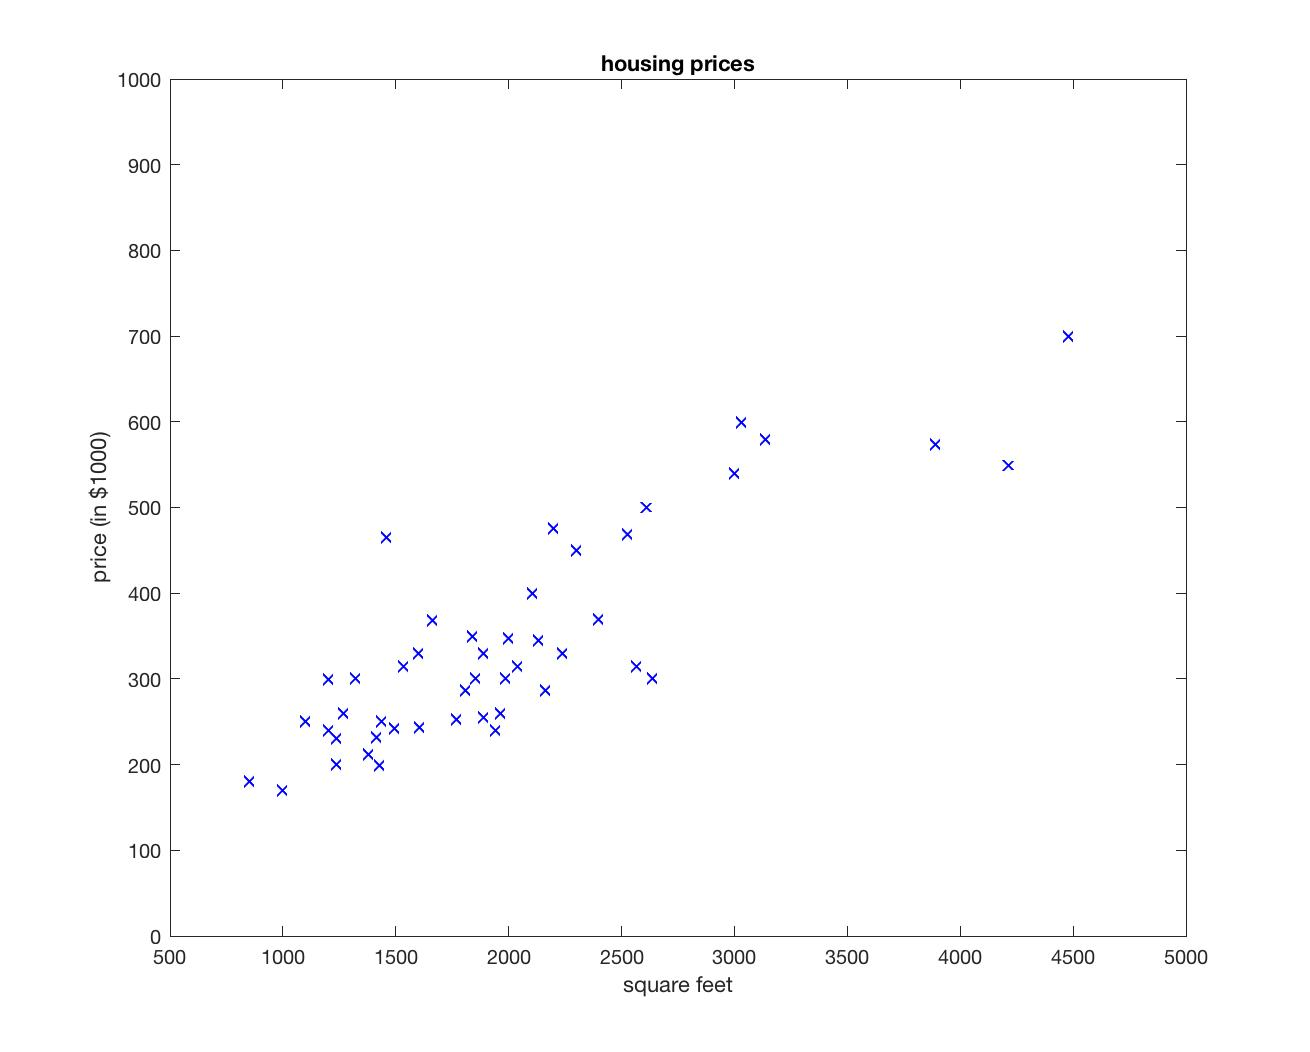 Learning Machine Learning 4 - Linear regression, gradient descent